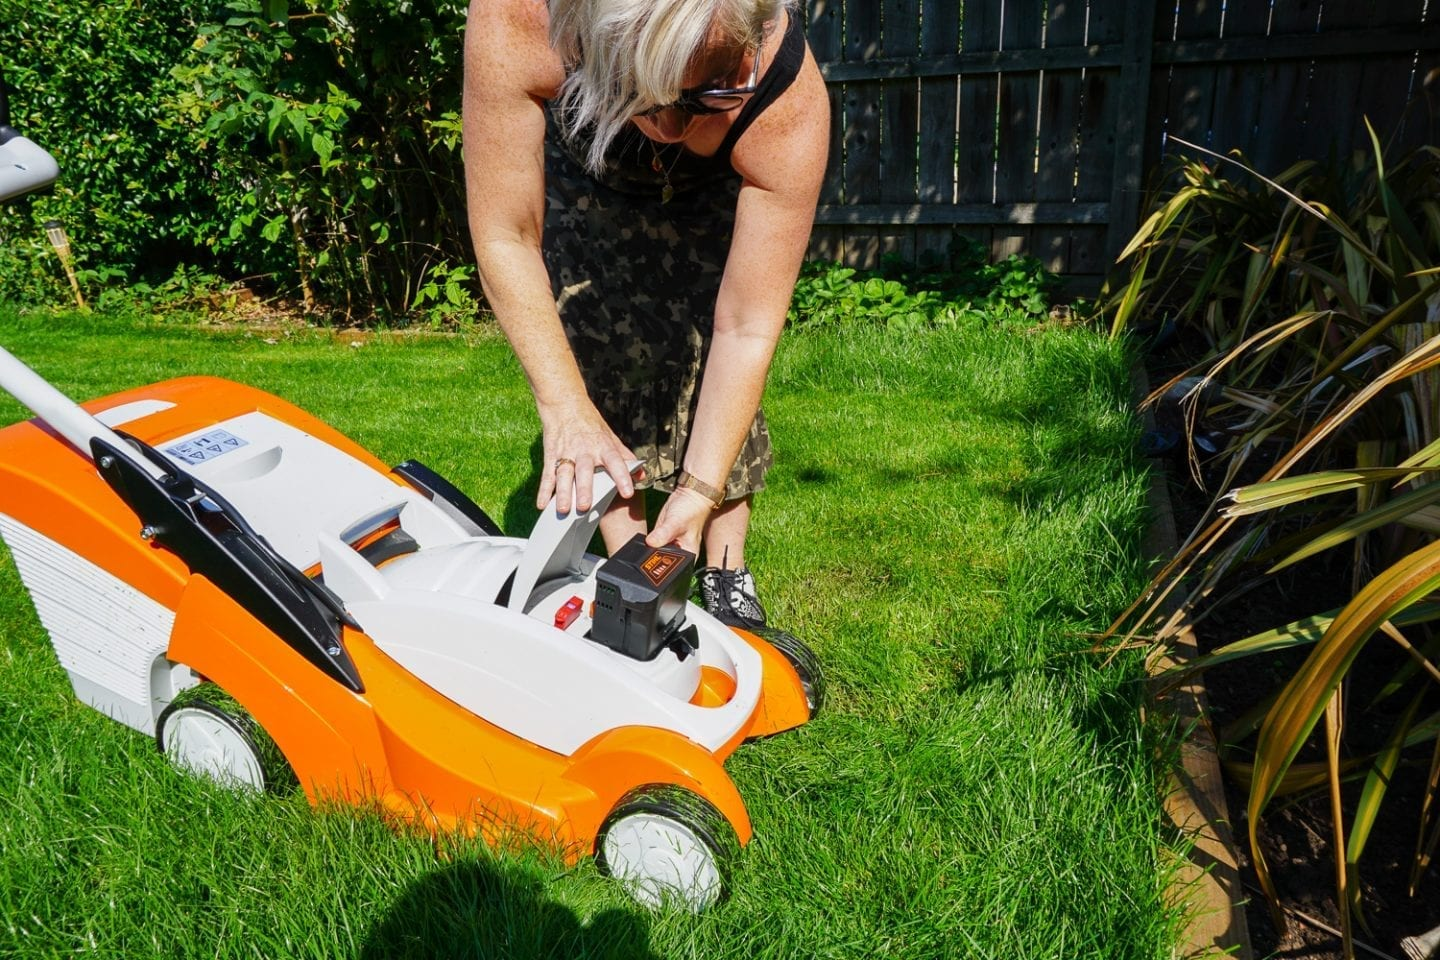 changing the batter on stihl lawn mower